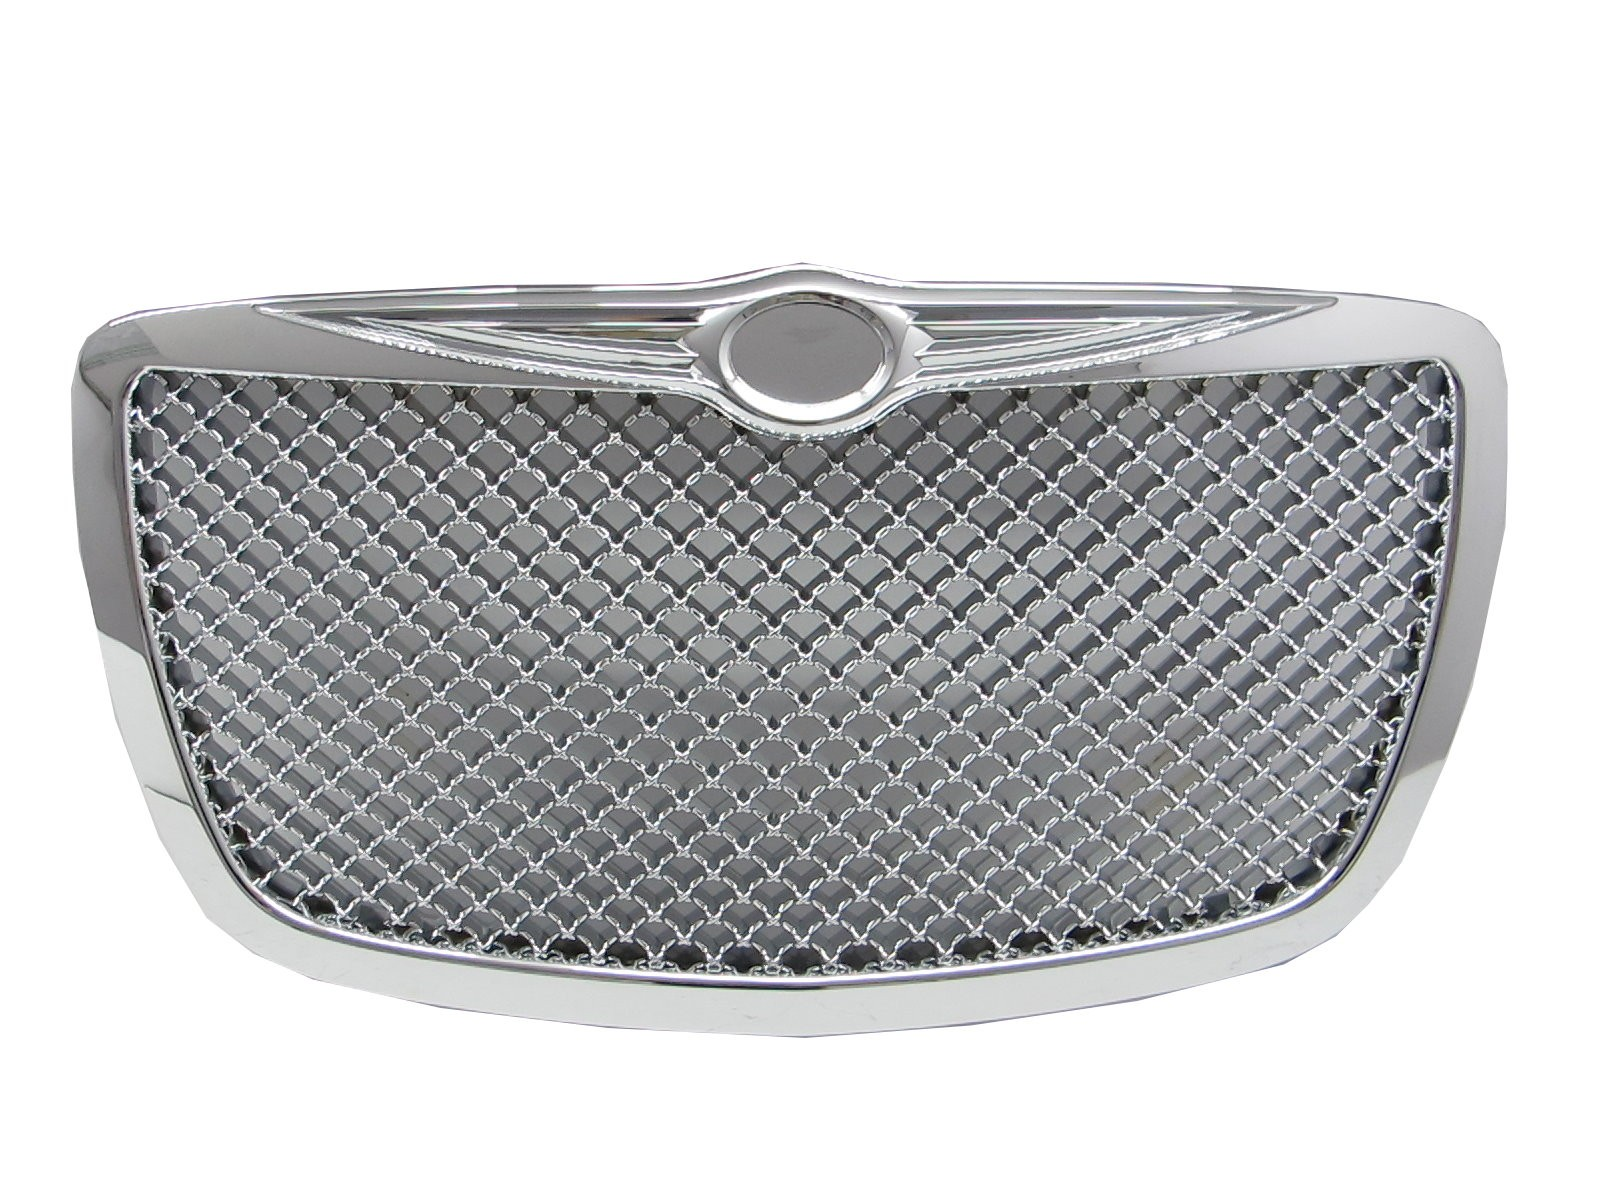 CrazyTheGod 300C 300 2005-2010 GRILLE/GRILL BENTLY STYLE CHROME for CHRYSLER